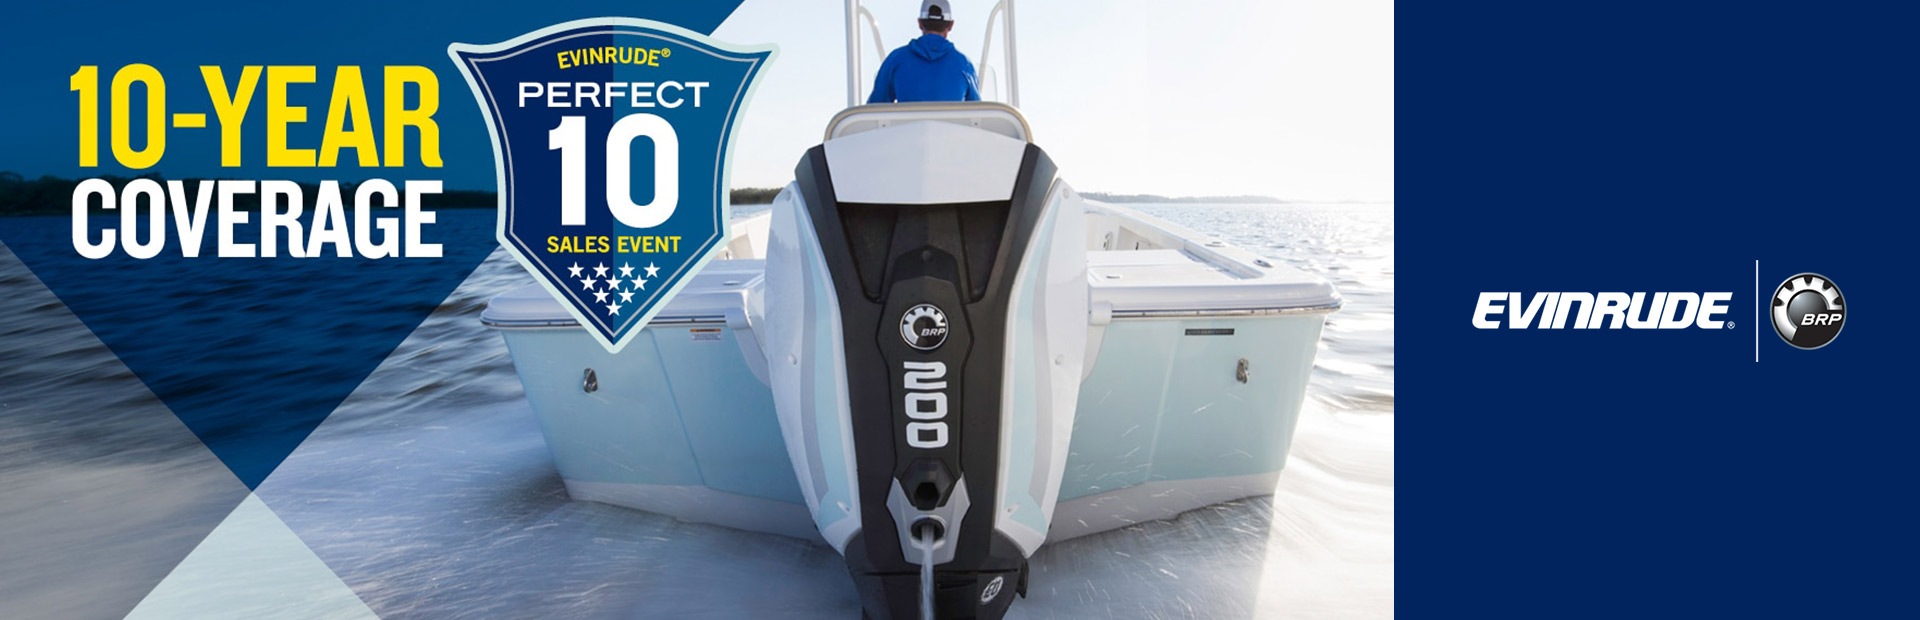 Evinrude: Evinrude® Perfect 10 Sales Event